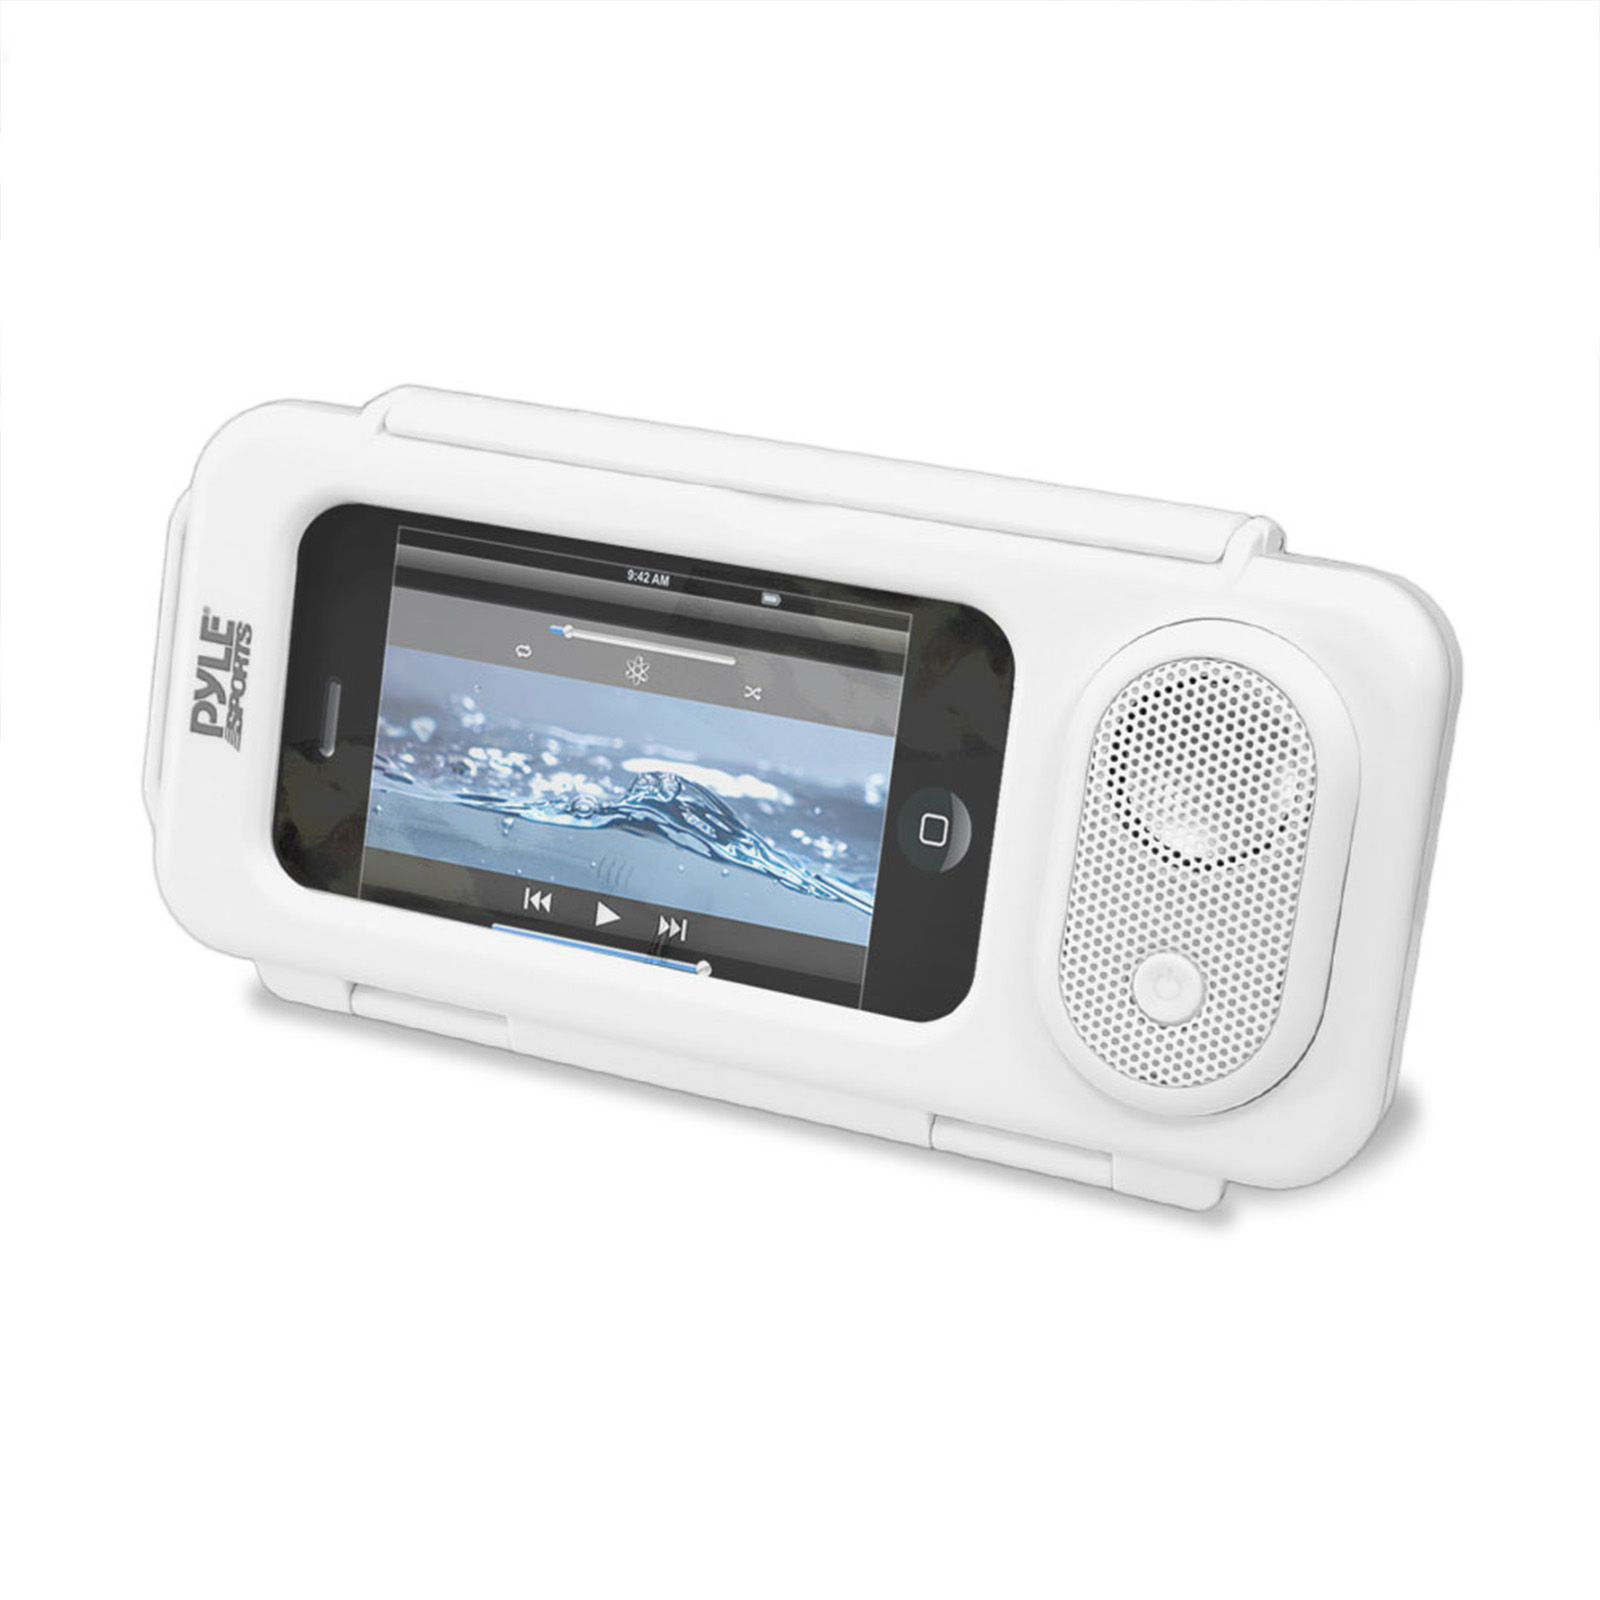 Pyle Surf Sound Play Universal Waterproof IOS, iPhone4 & iPhone5 MP3 Player & Smartphone Portable Speaker and Case- White